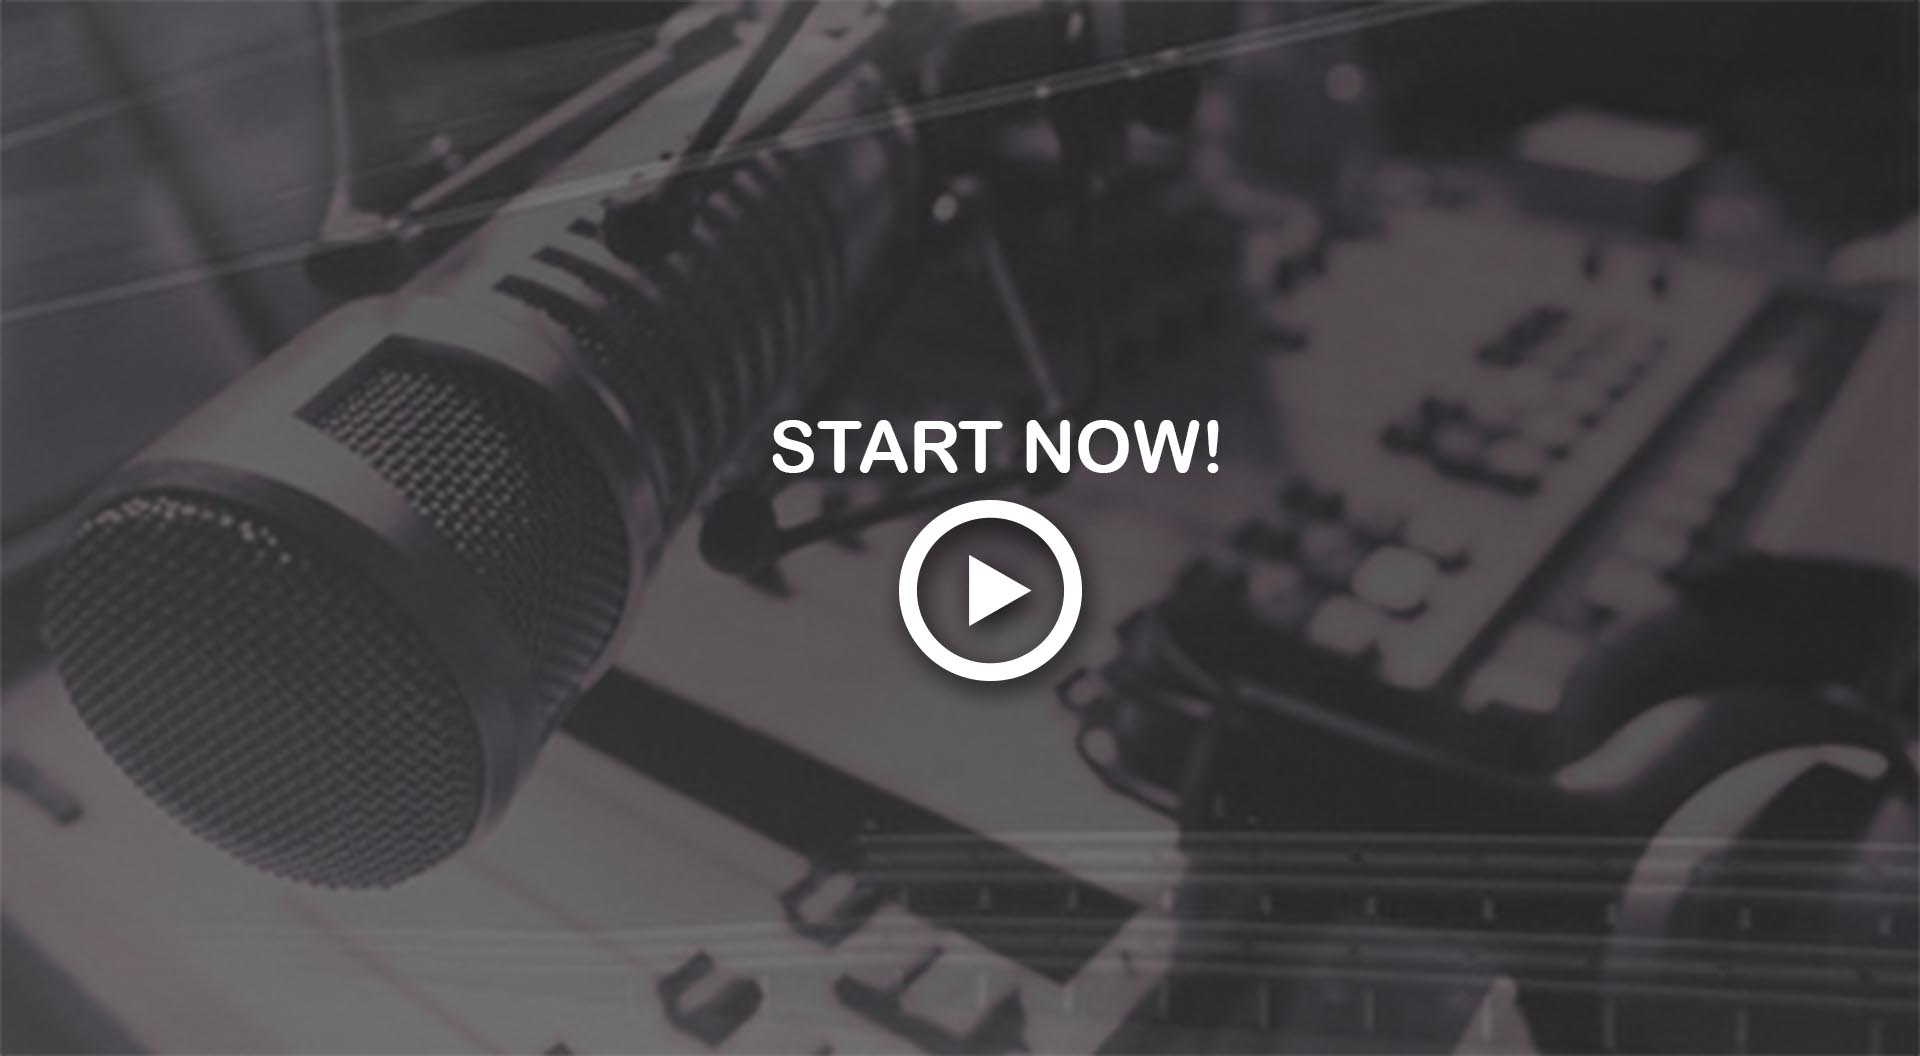 CREATE YOUR WEB RADIO - SHOUTCAST ICECAST VPS